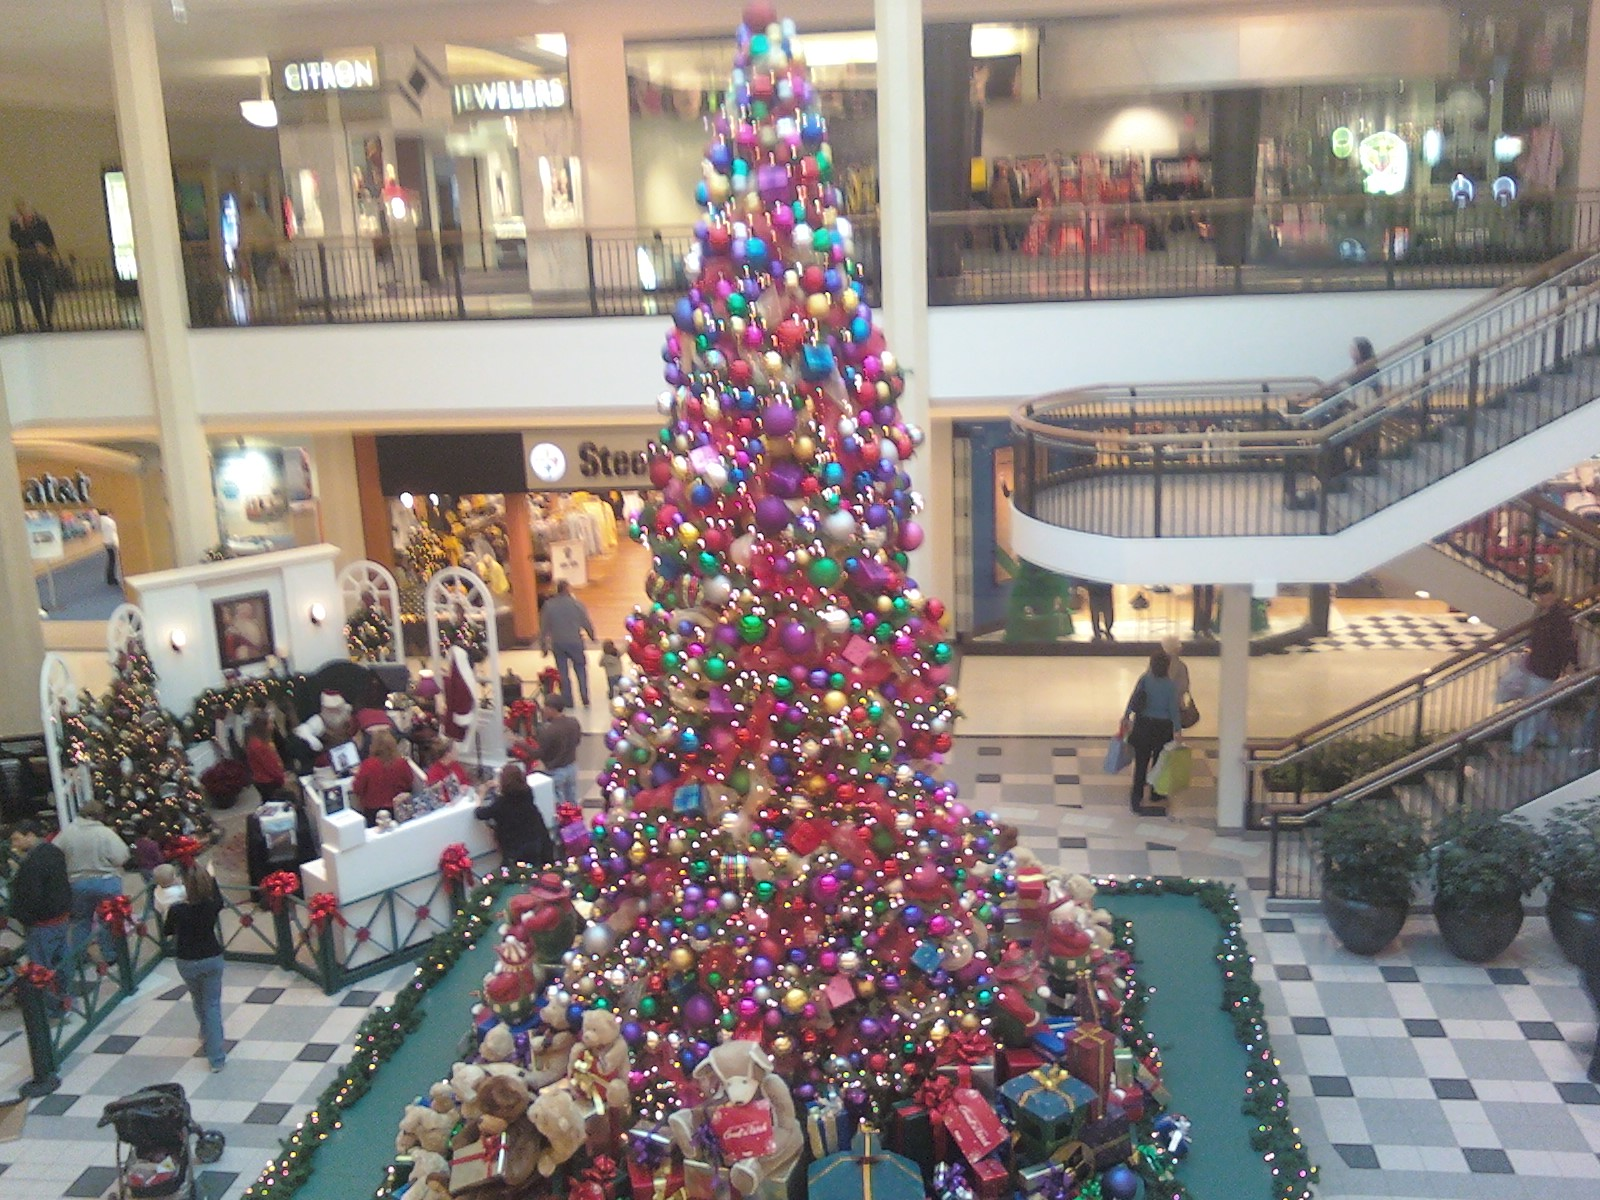 So many ornaments, you can hardly see the tree...